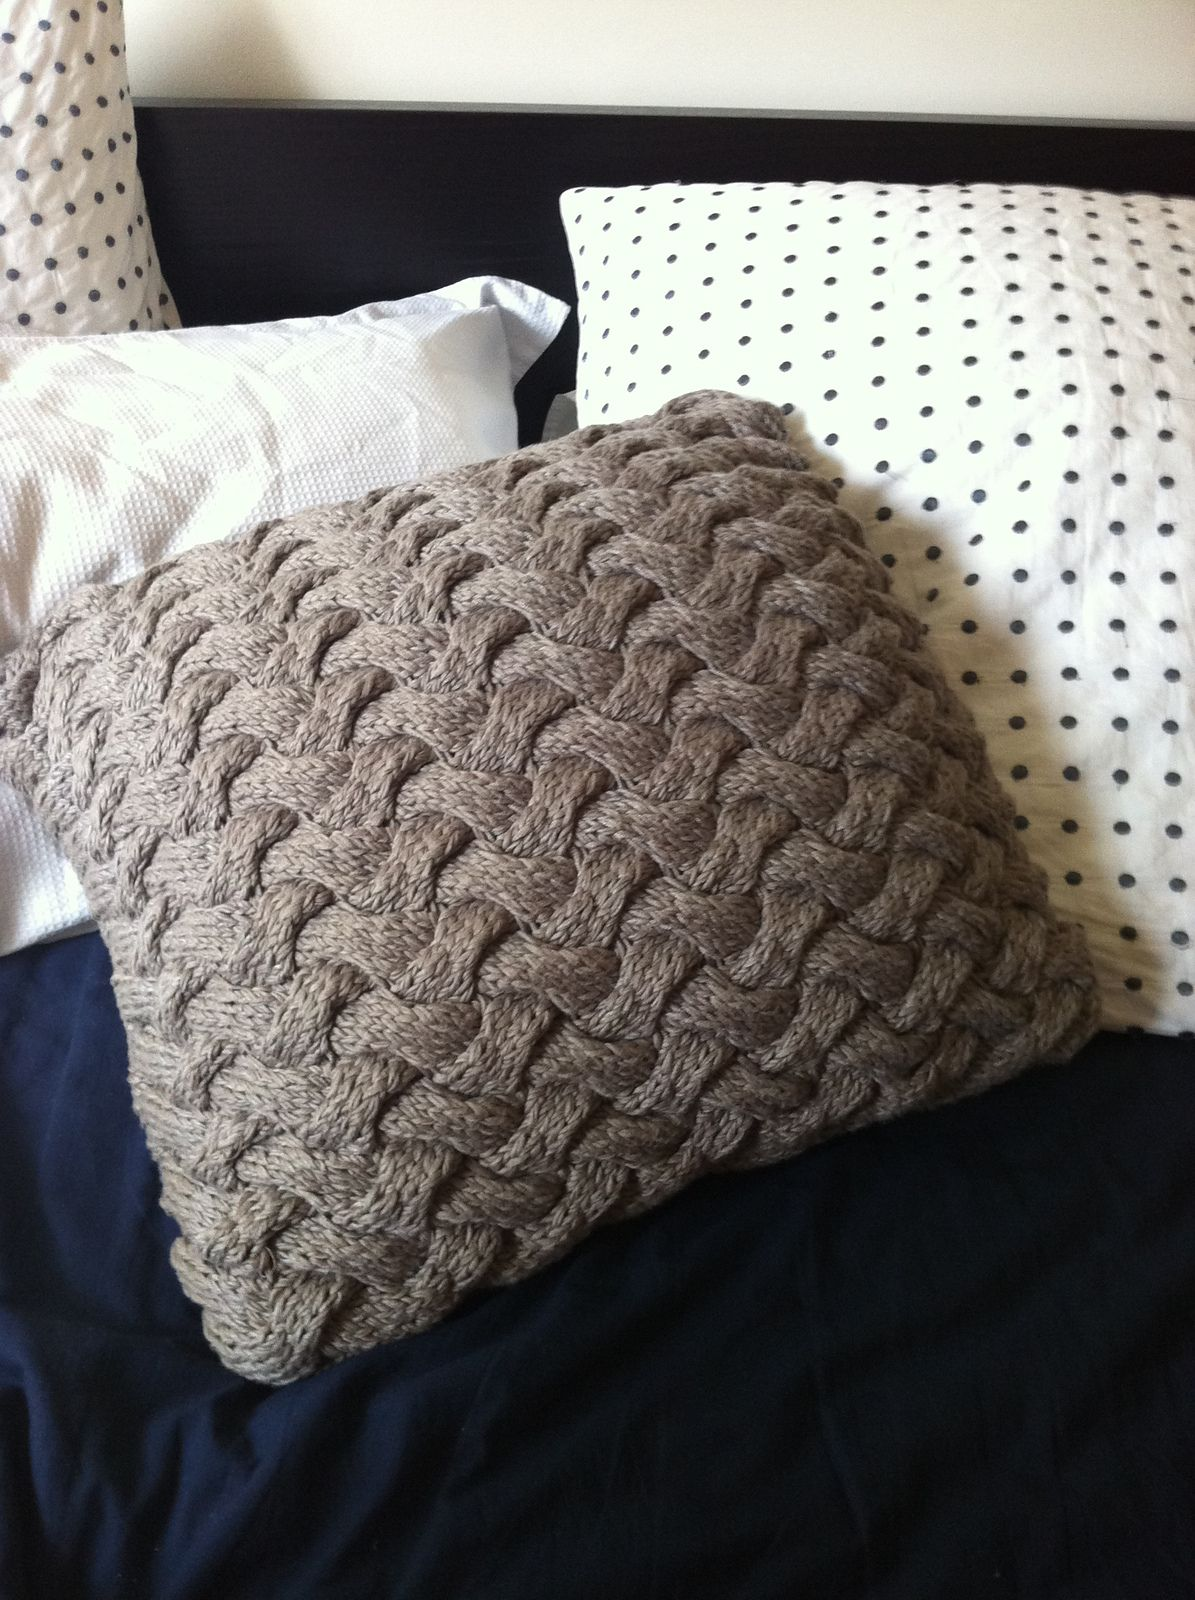 Ravelry chunky cable knit braided pillow by catalina miguel ravelry chunky cable knit braided pillow pattern by catalina miguel yera moda yarn from spotlight held dbl ball of viscose derived from bamboo and cotton bankloansurffo Choice Image